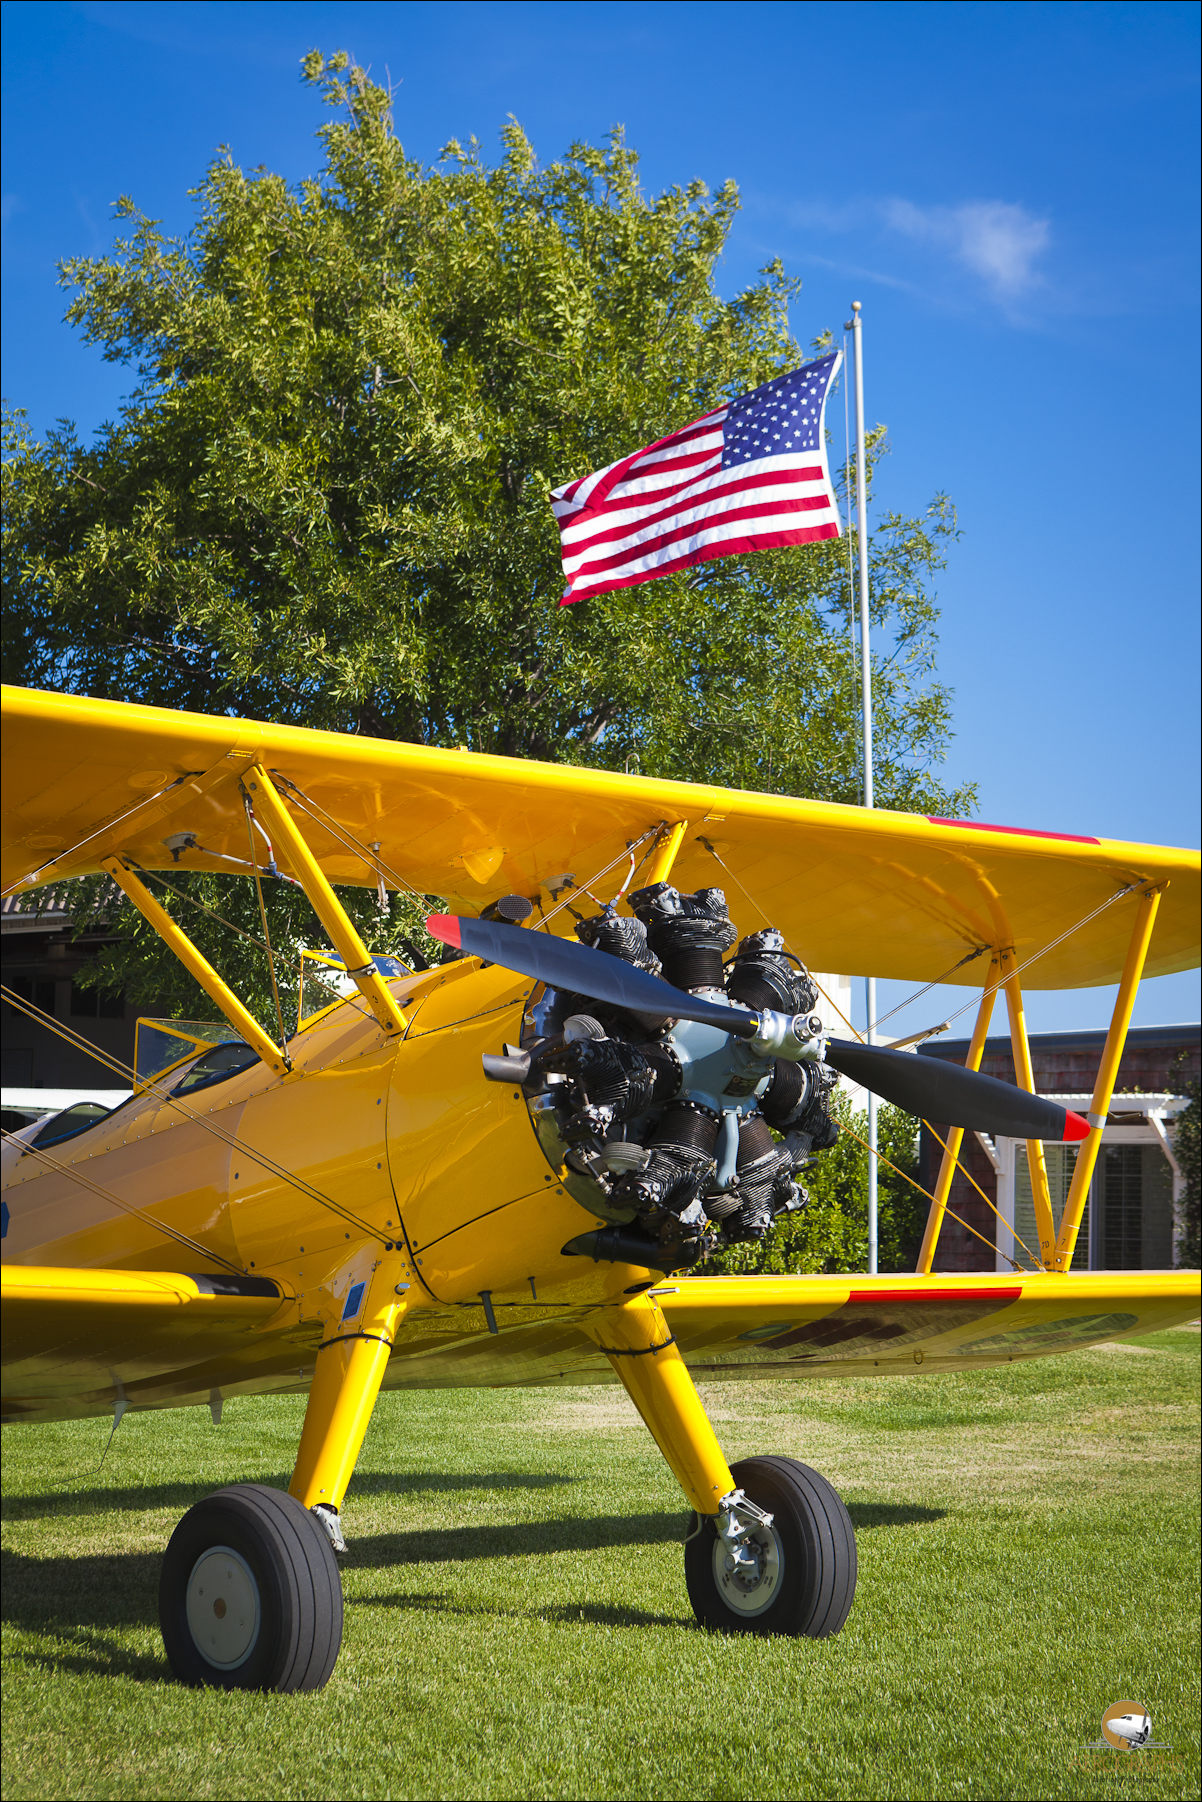 Boeing Stearman, part of the Allen Airways Flying Museum collection.  El Cajon, California.